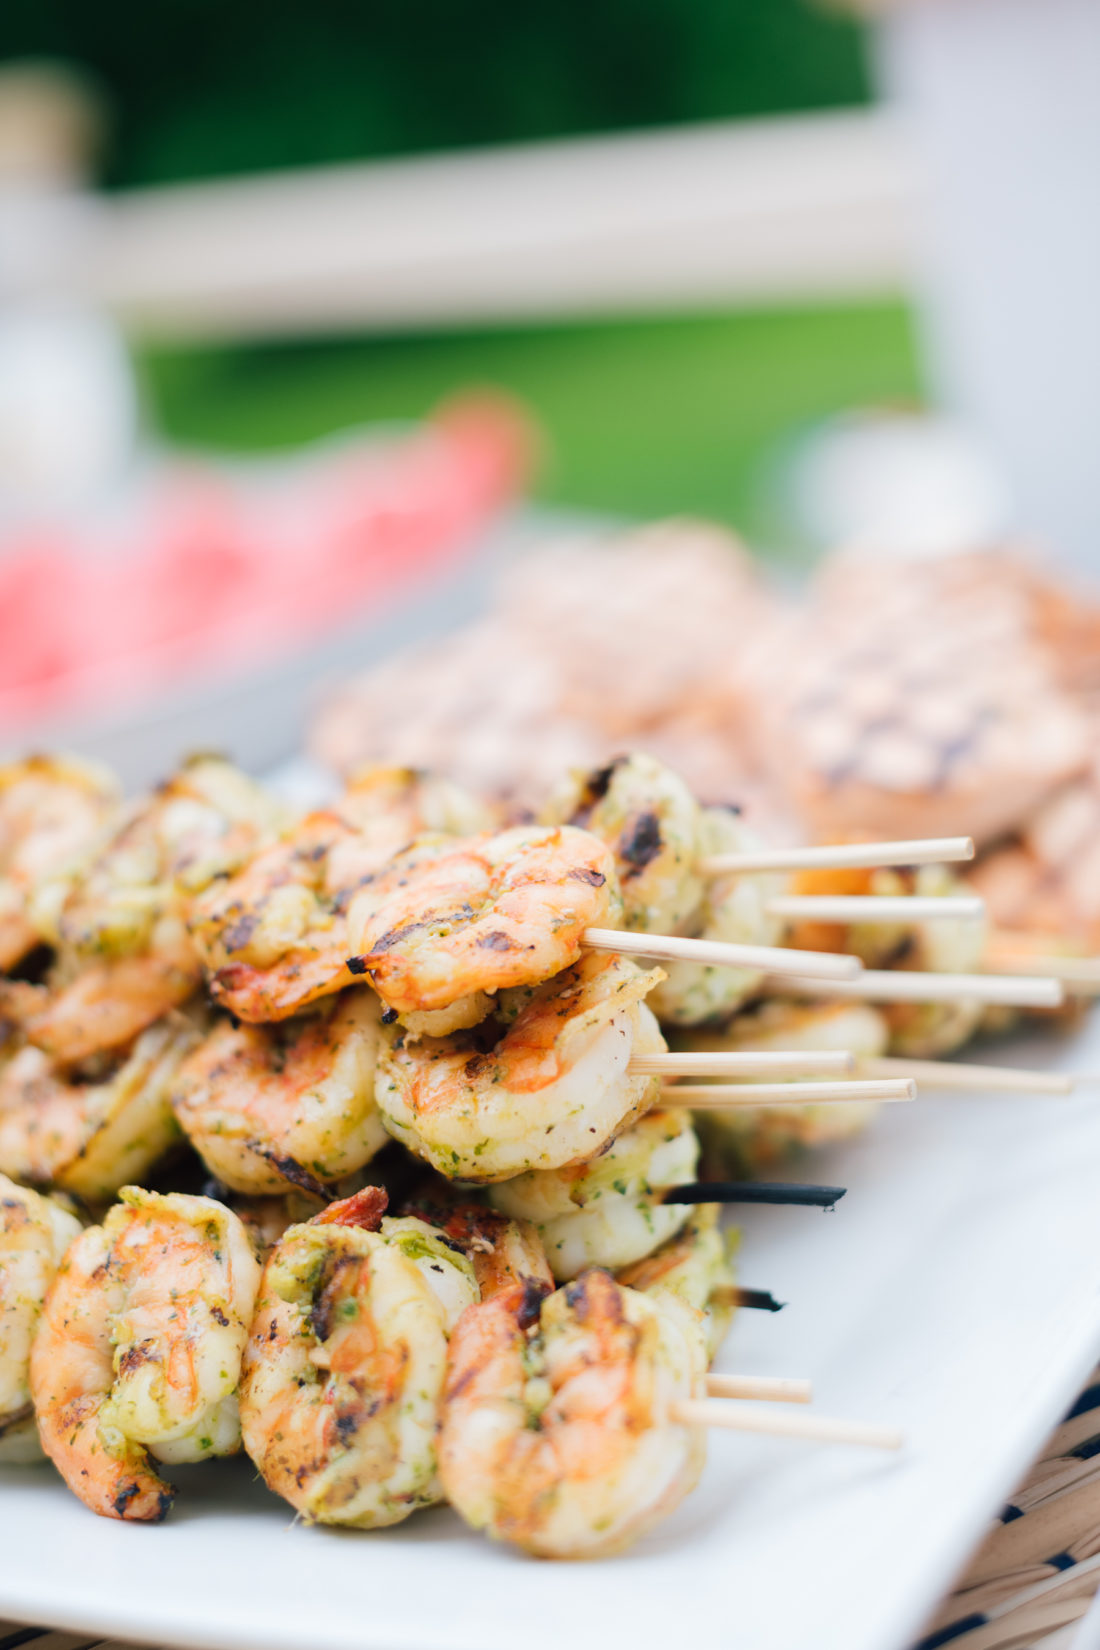 Shrimp skewers at Eva Amurri Martino's summer clambake provided by Fjord Fish Market